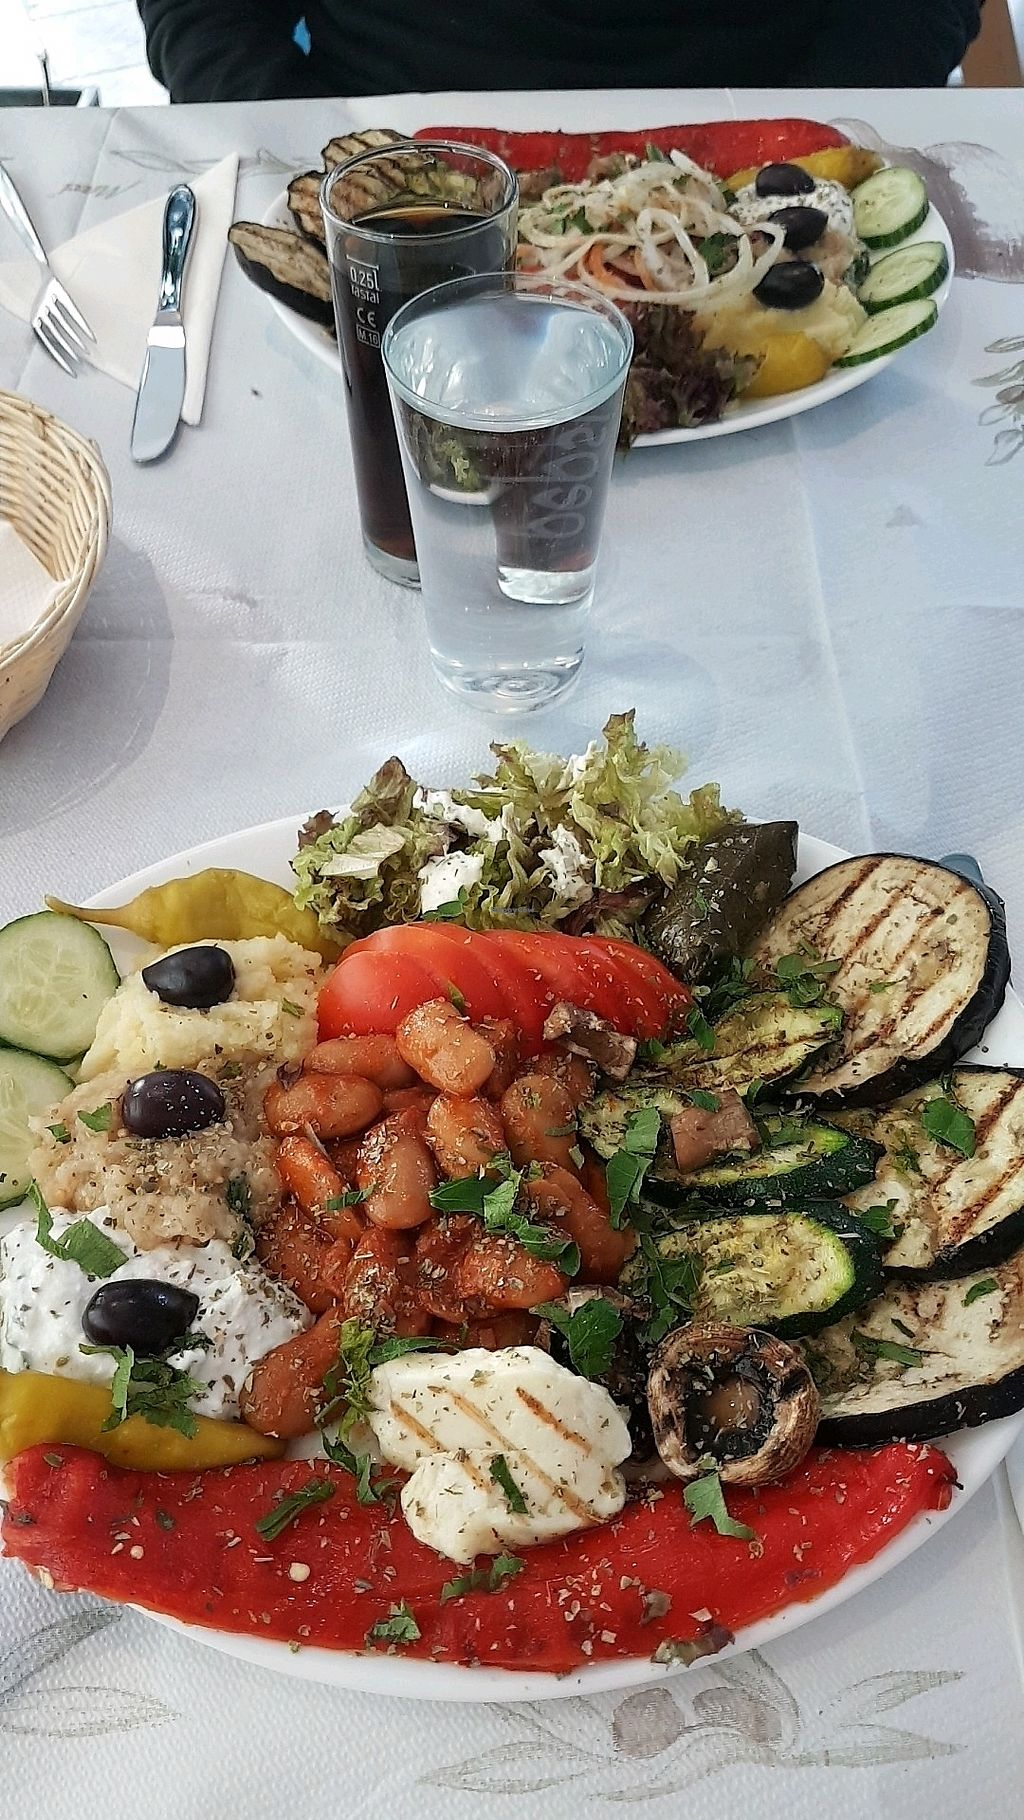 """Photo of Zorbas Land   by <a href=""""/members/profile/KimberlyM."""">KimberlyM.</a> <br/>vegetarian plate  <br/> March 13, 2018  - <a href='/contact/abuse/image/75784/370244'>Report</a>"""